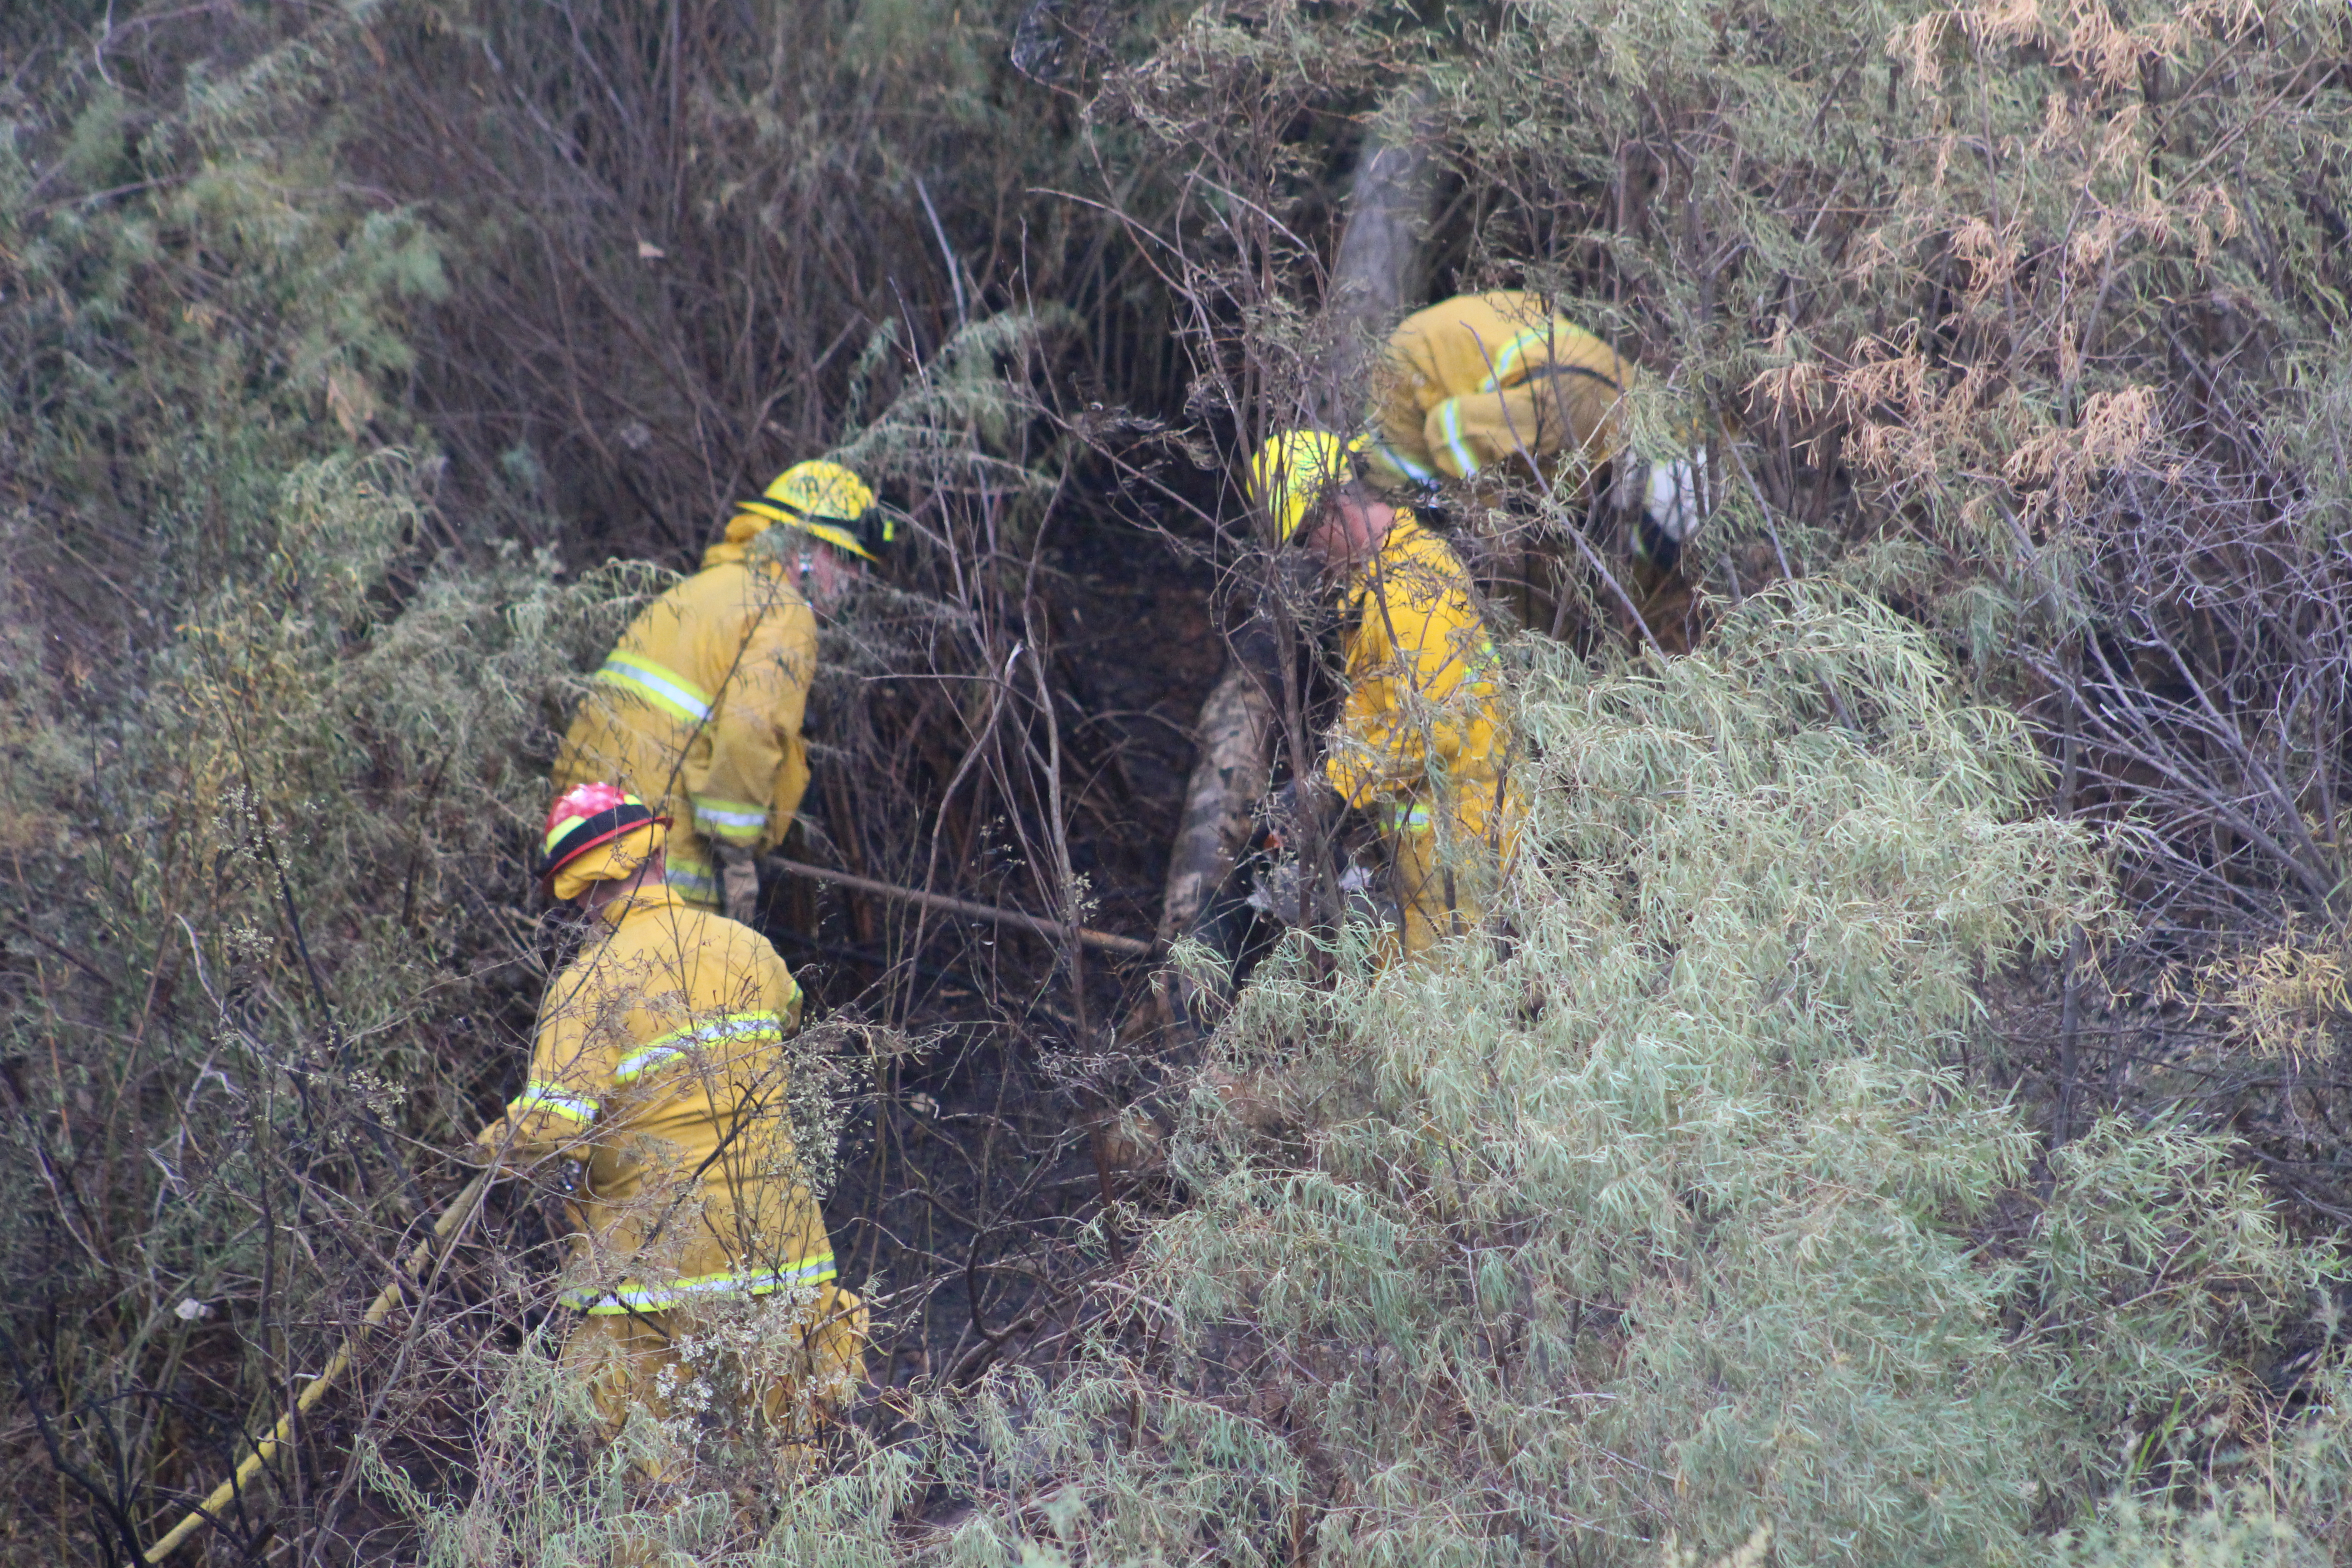 Firefighters extinguish a brush fire in the wash between Lava Flow Drive and Tuweap Drive in St. George Sunday, Oct. 2, 2016 | Photo by Cody Blowers, St. George News